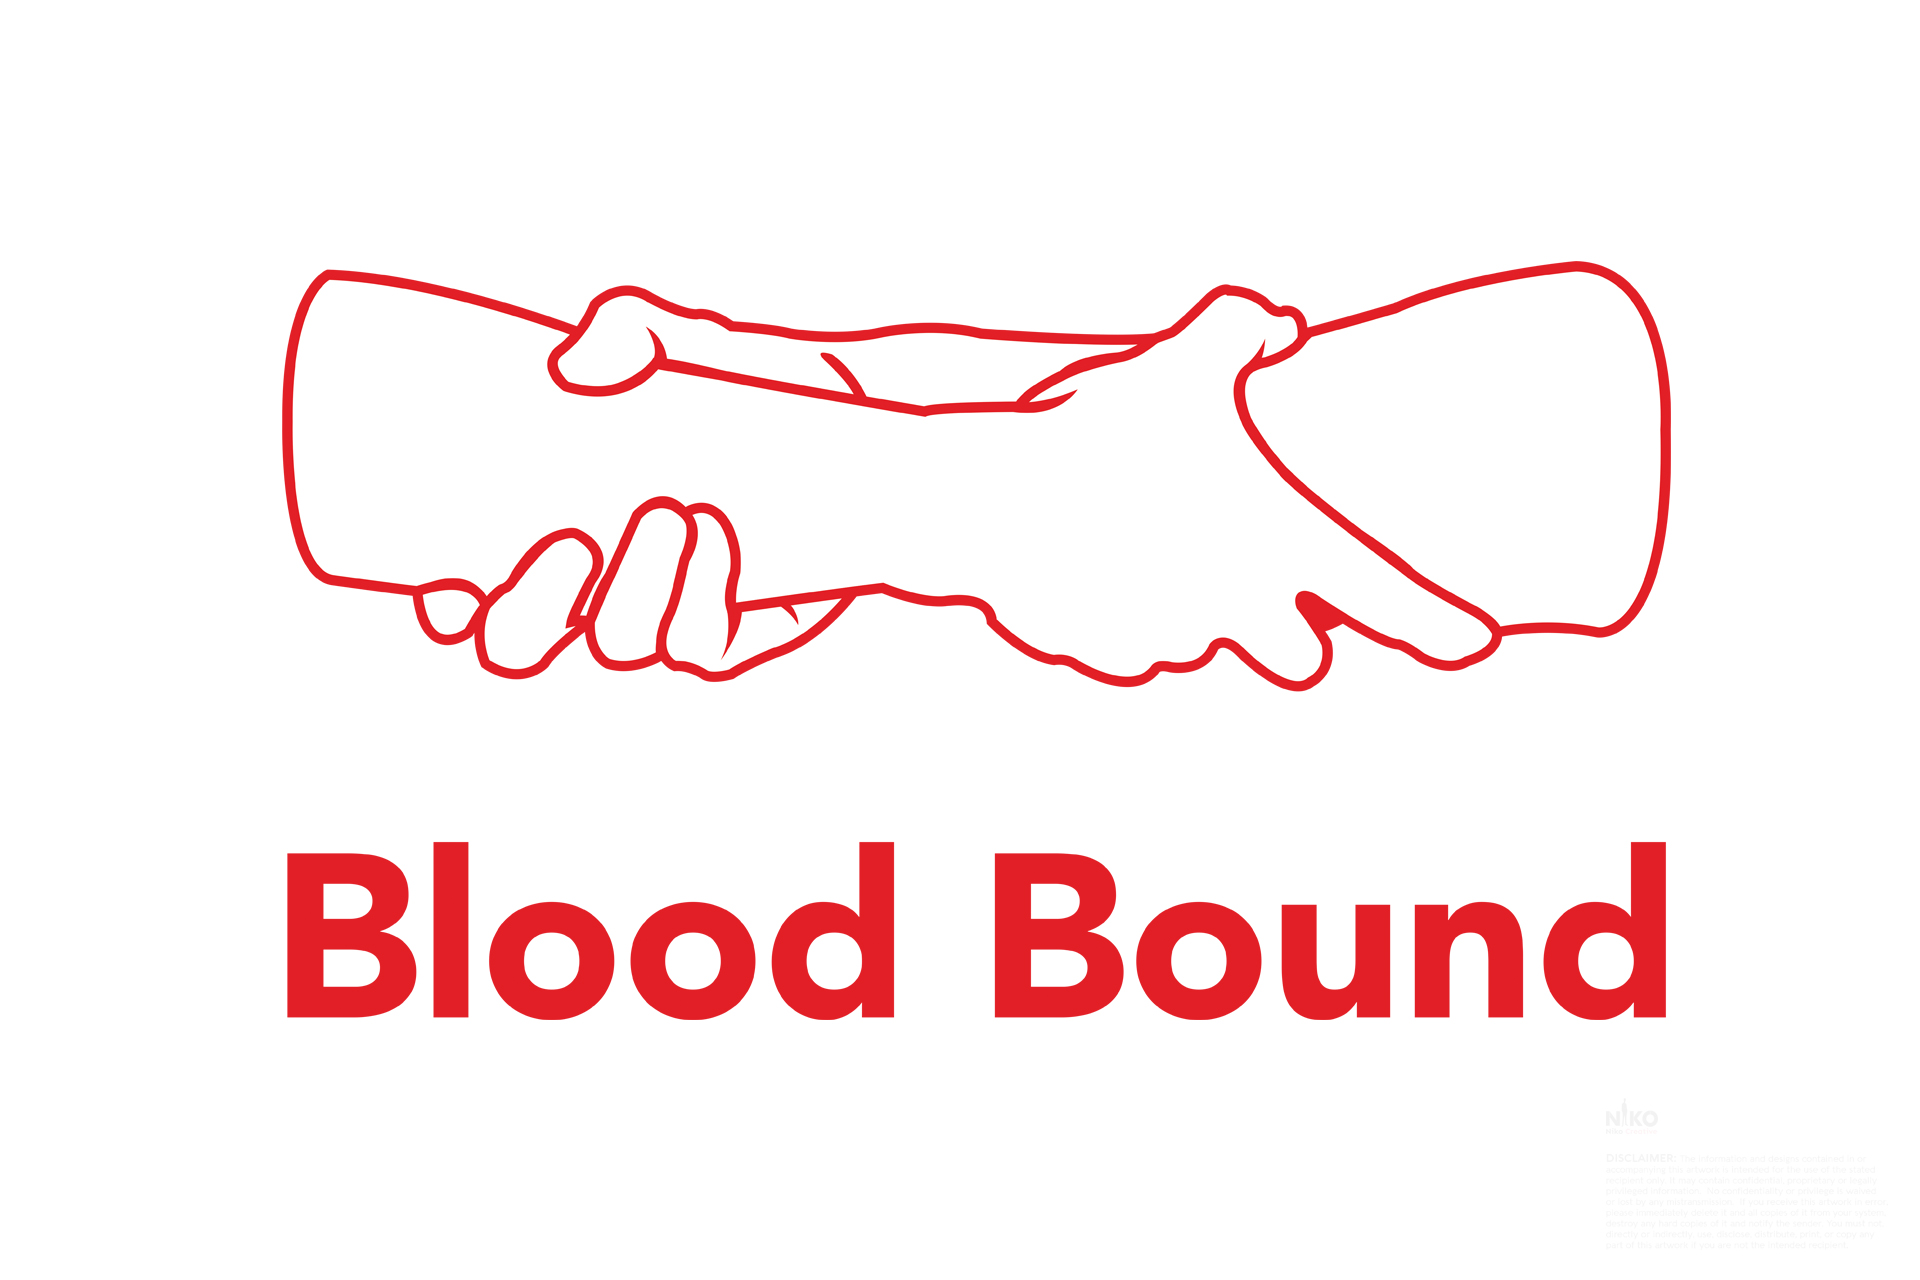 Day 26 Blood Bound